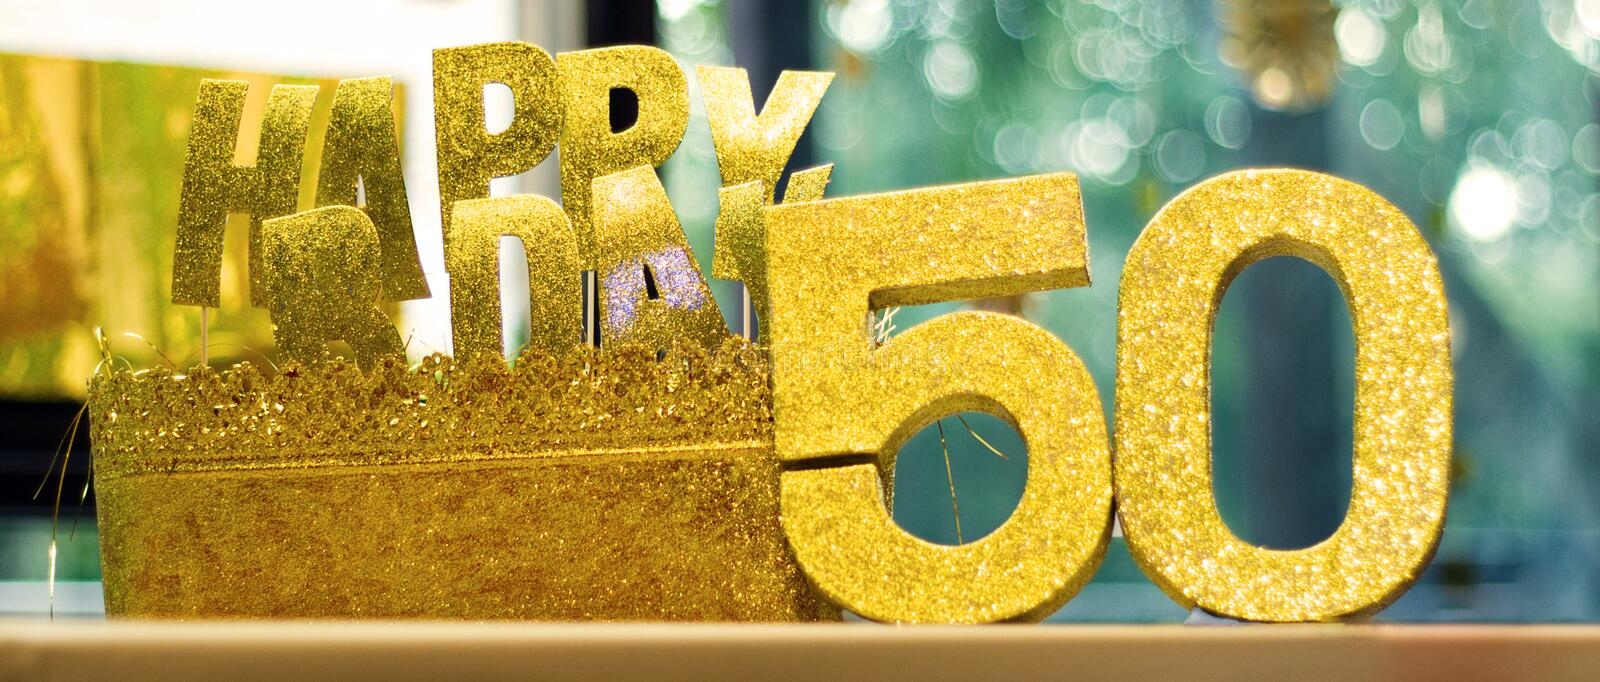 Happy 50th Birthday glittering props on a table royalty free stock image